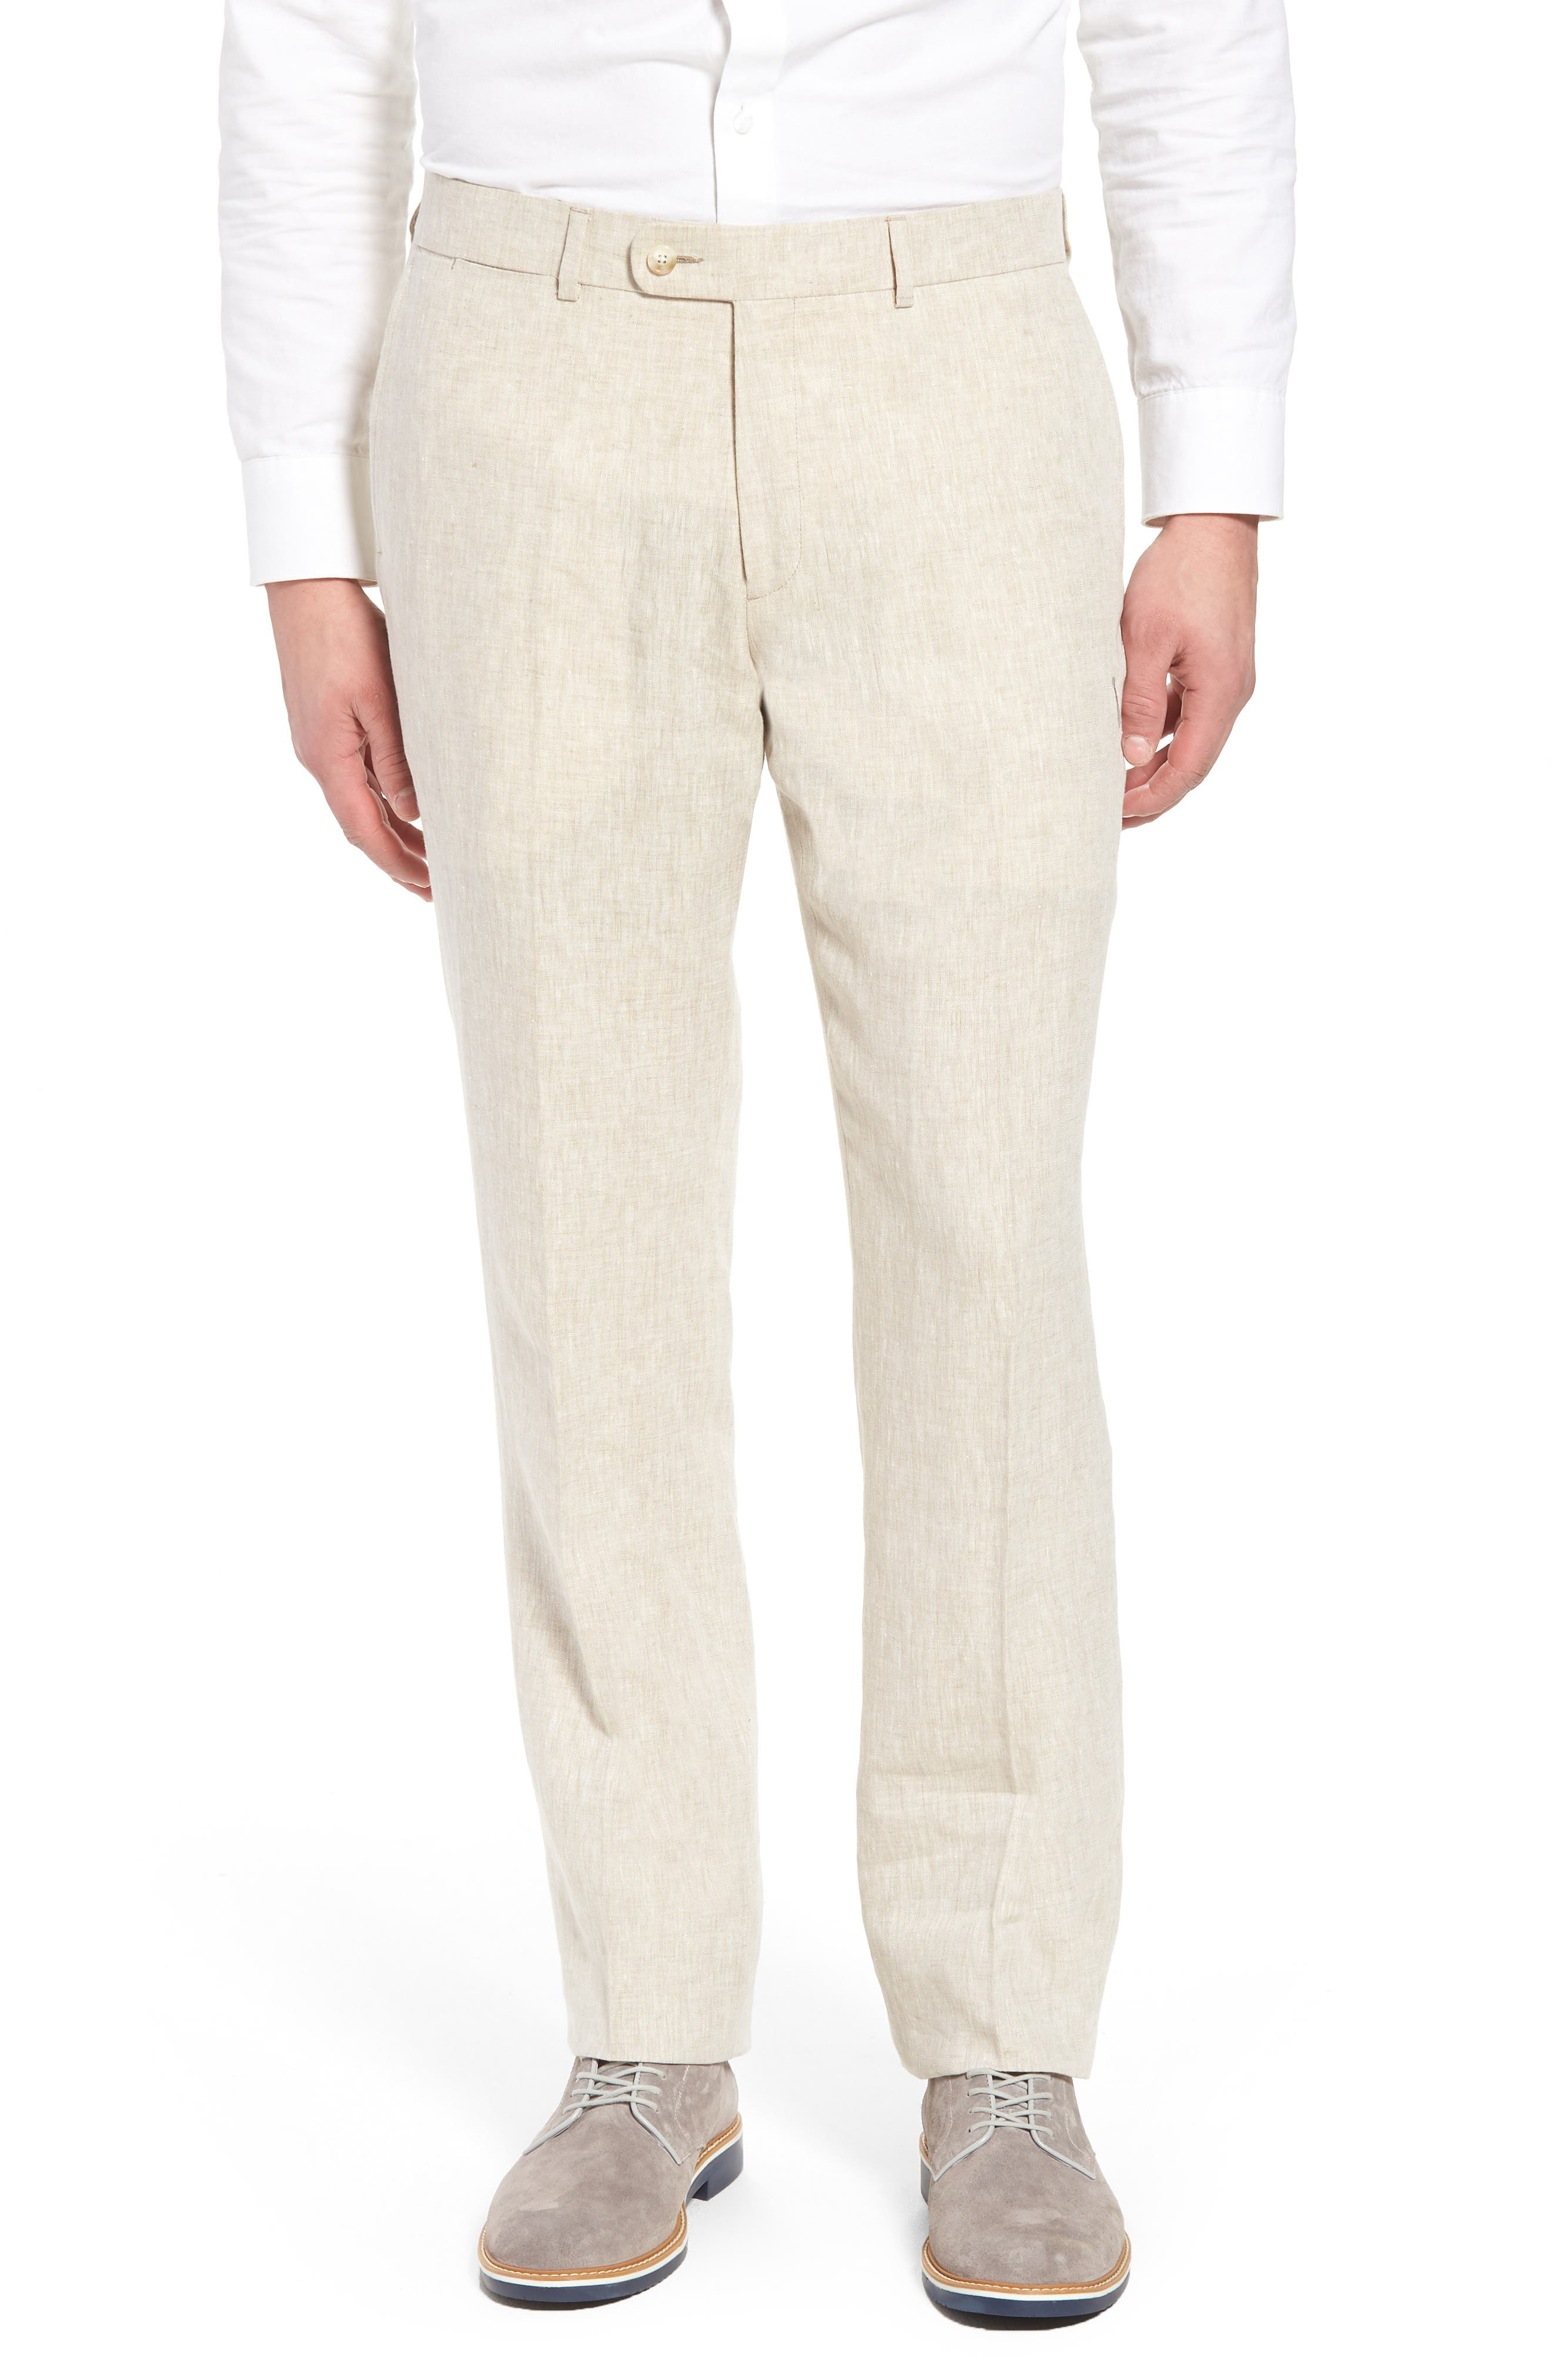 Andrew AIM Flat Front Linen Trousers,                             Main thumbnail 1, color,                             105